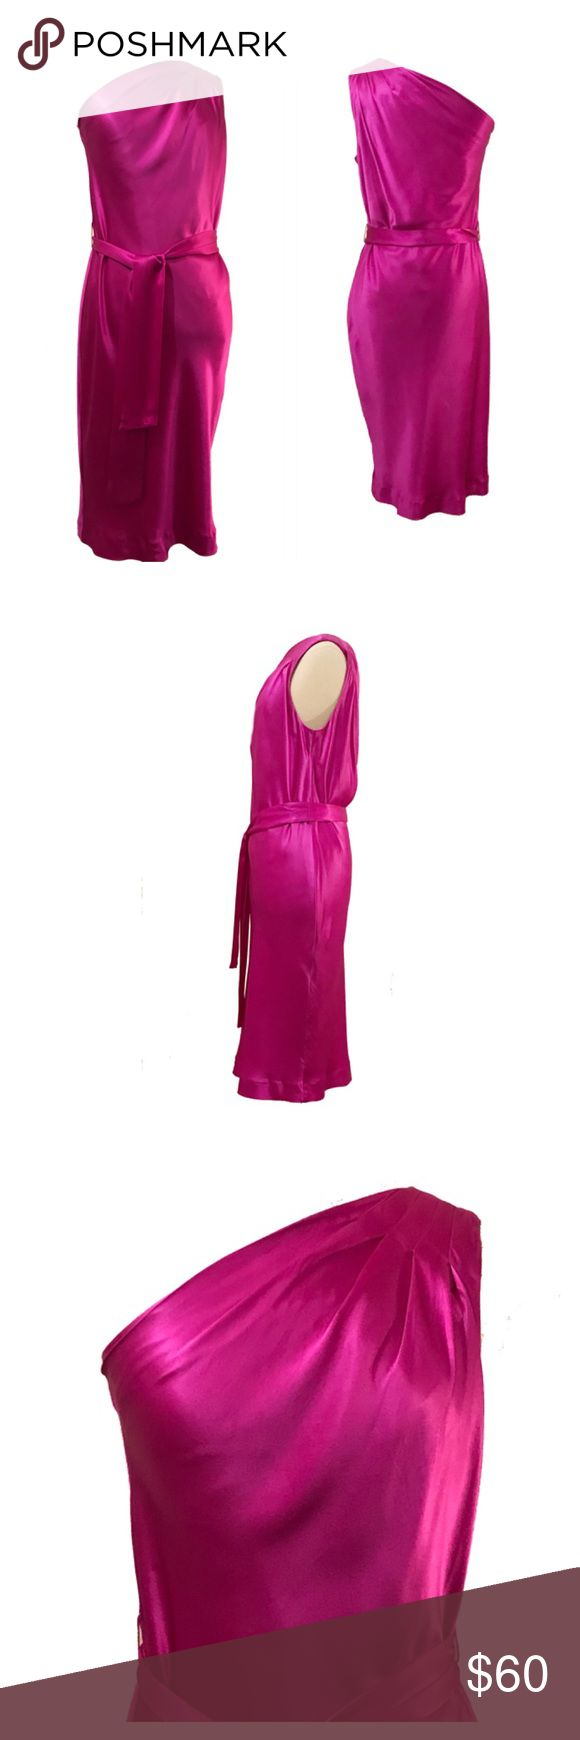 "Banana Republic silk one shoulder dress 2 Banana Republic hot hot pink/ magenta silk one shoulder dress 2 in excellent condition. Very lightweight and soft.  Underarm to underarm: 16"" Waist:  28"" Length: 40"" Measurements taken flat Banana Republic Dresses Midi"